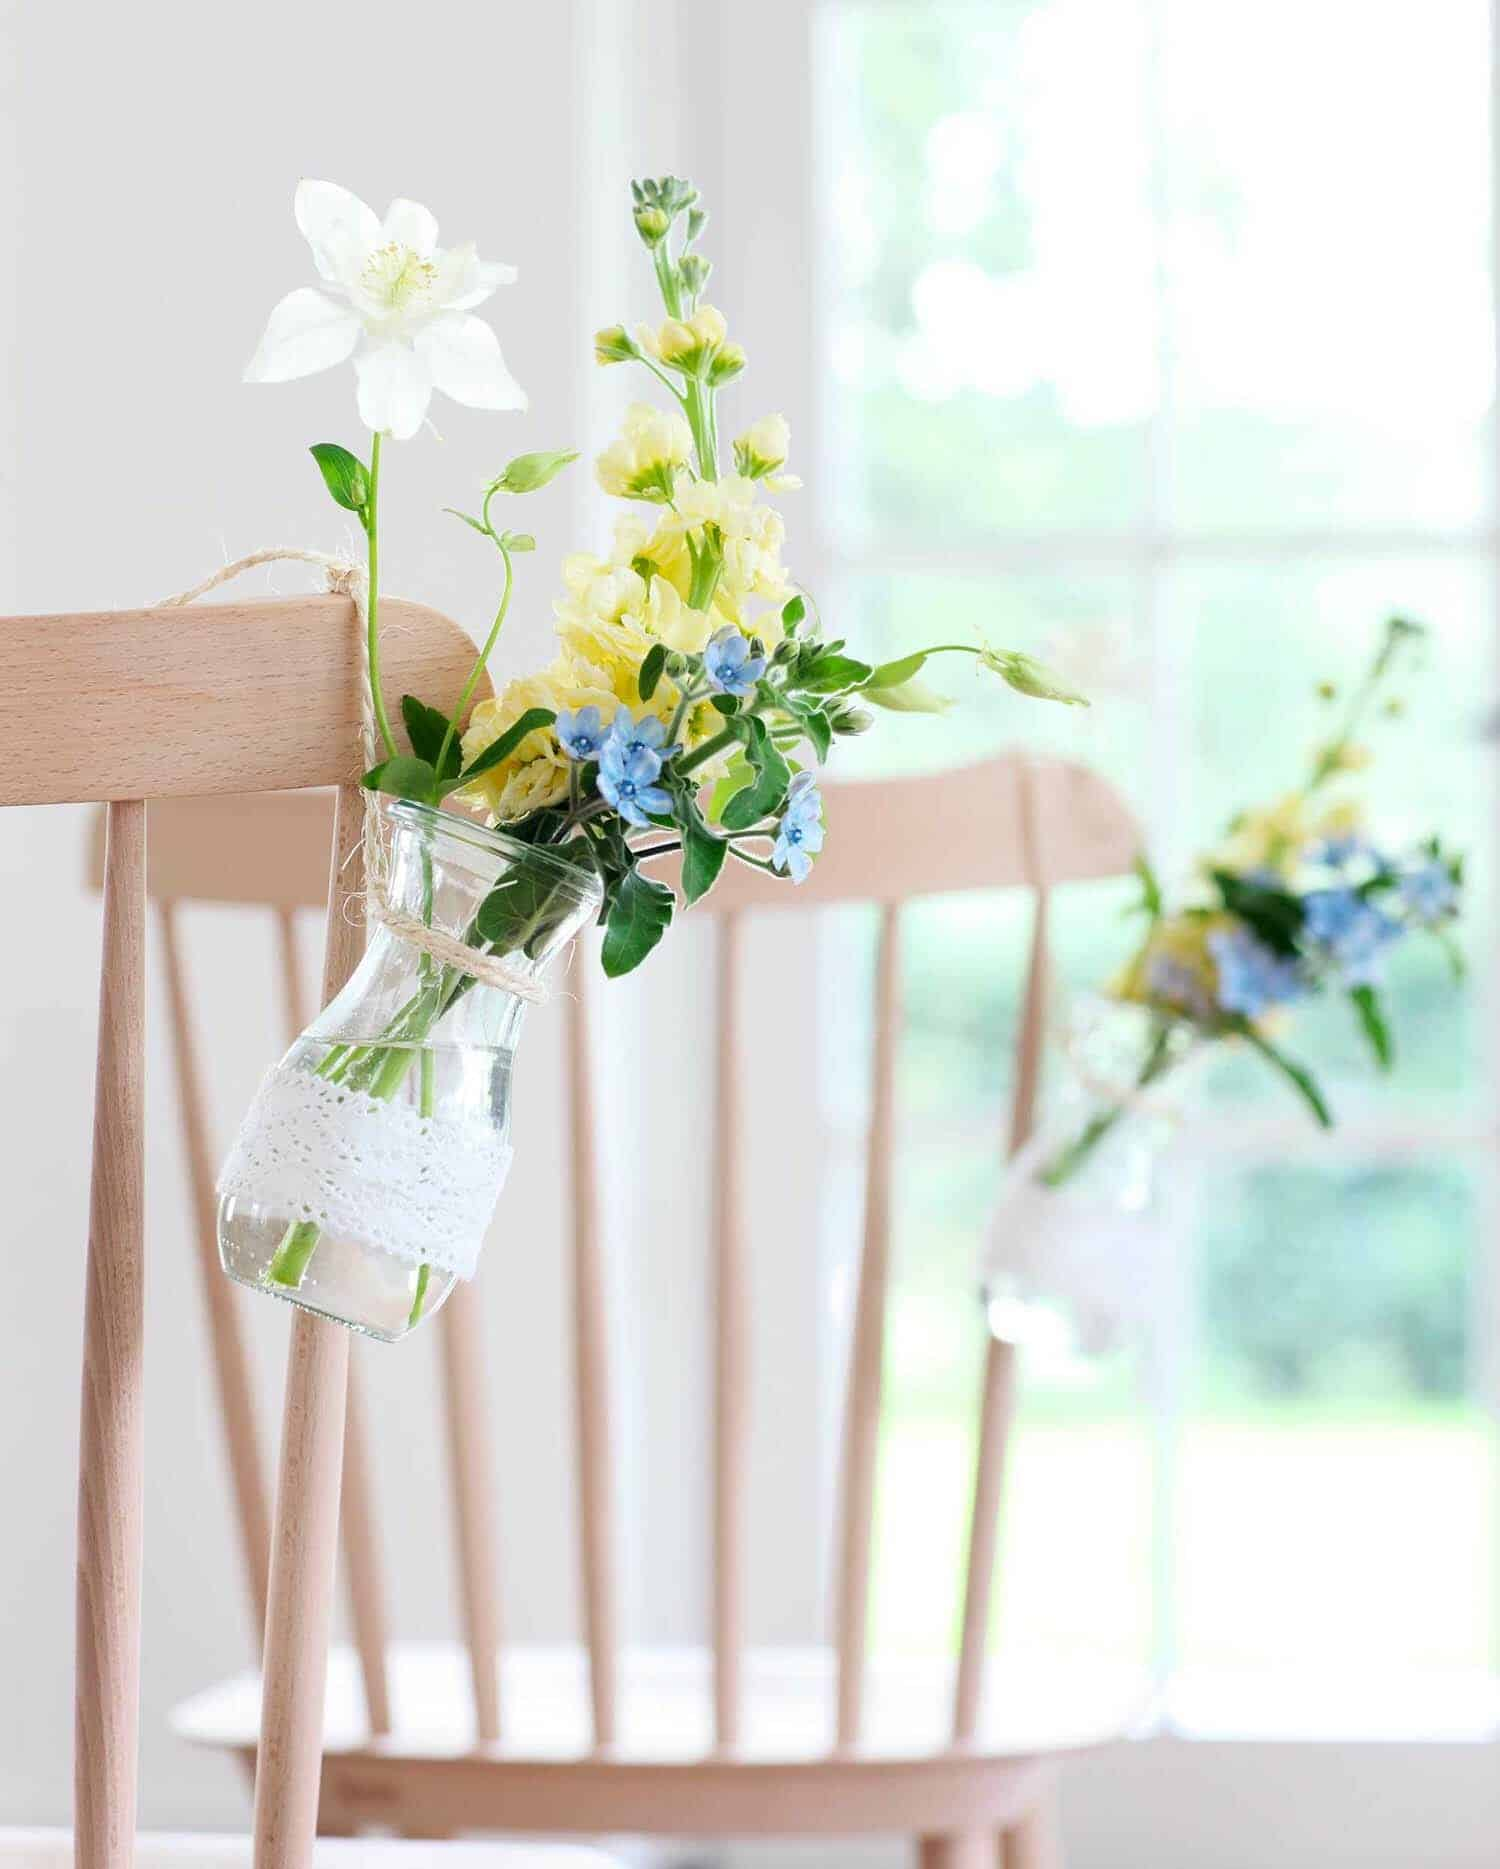 How To Decorate Your Home With Spring Floral Arrangements-08-1 Kindesign